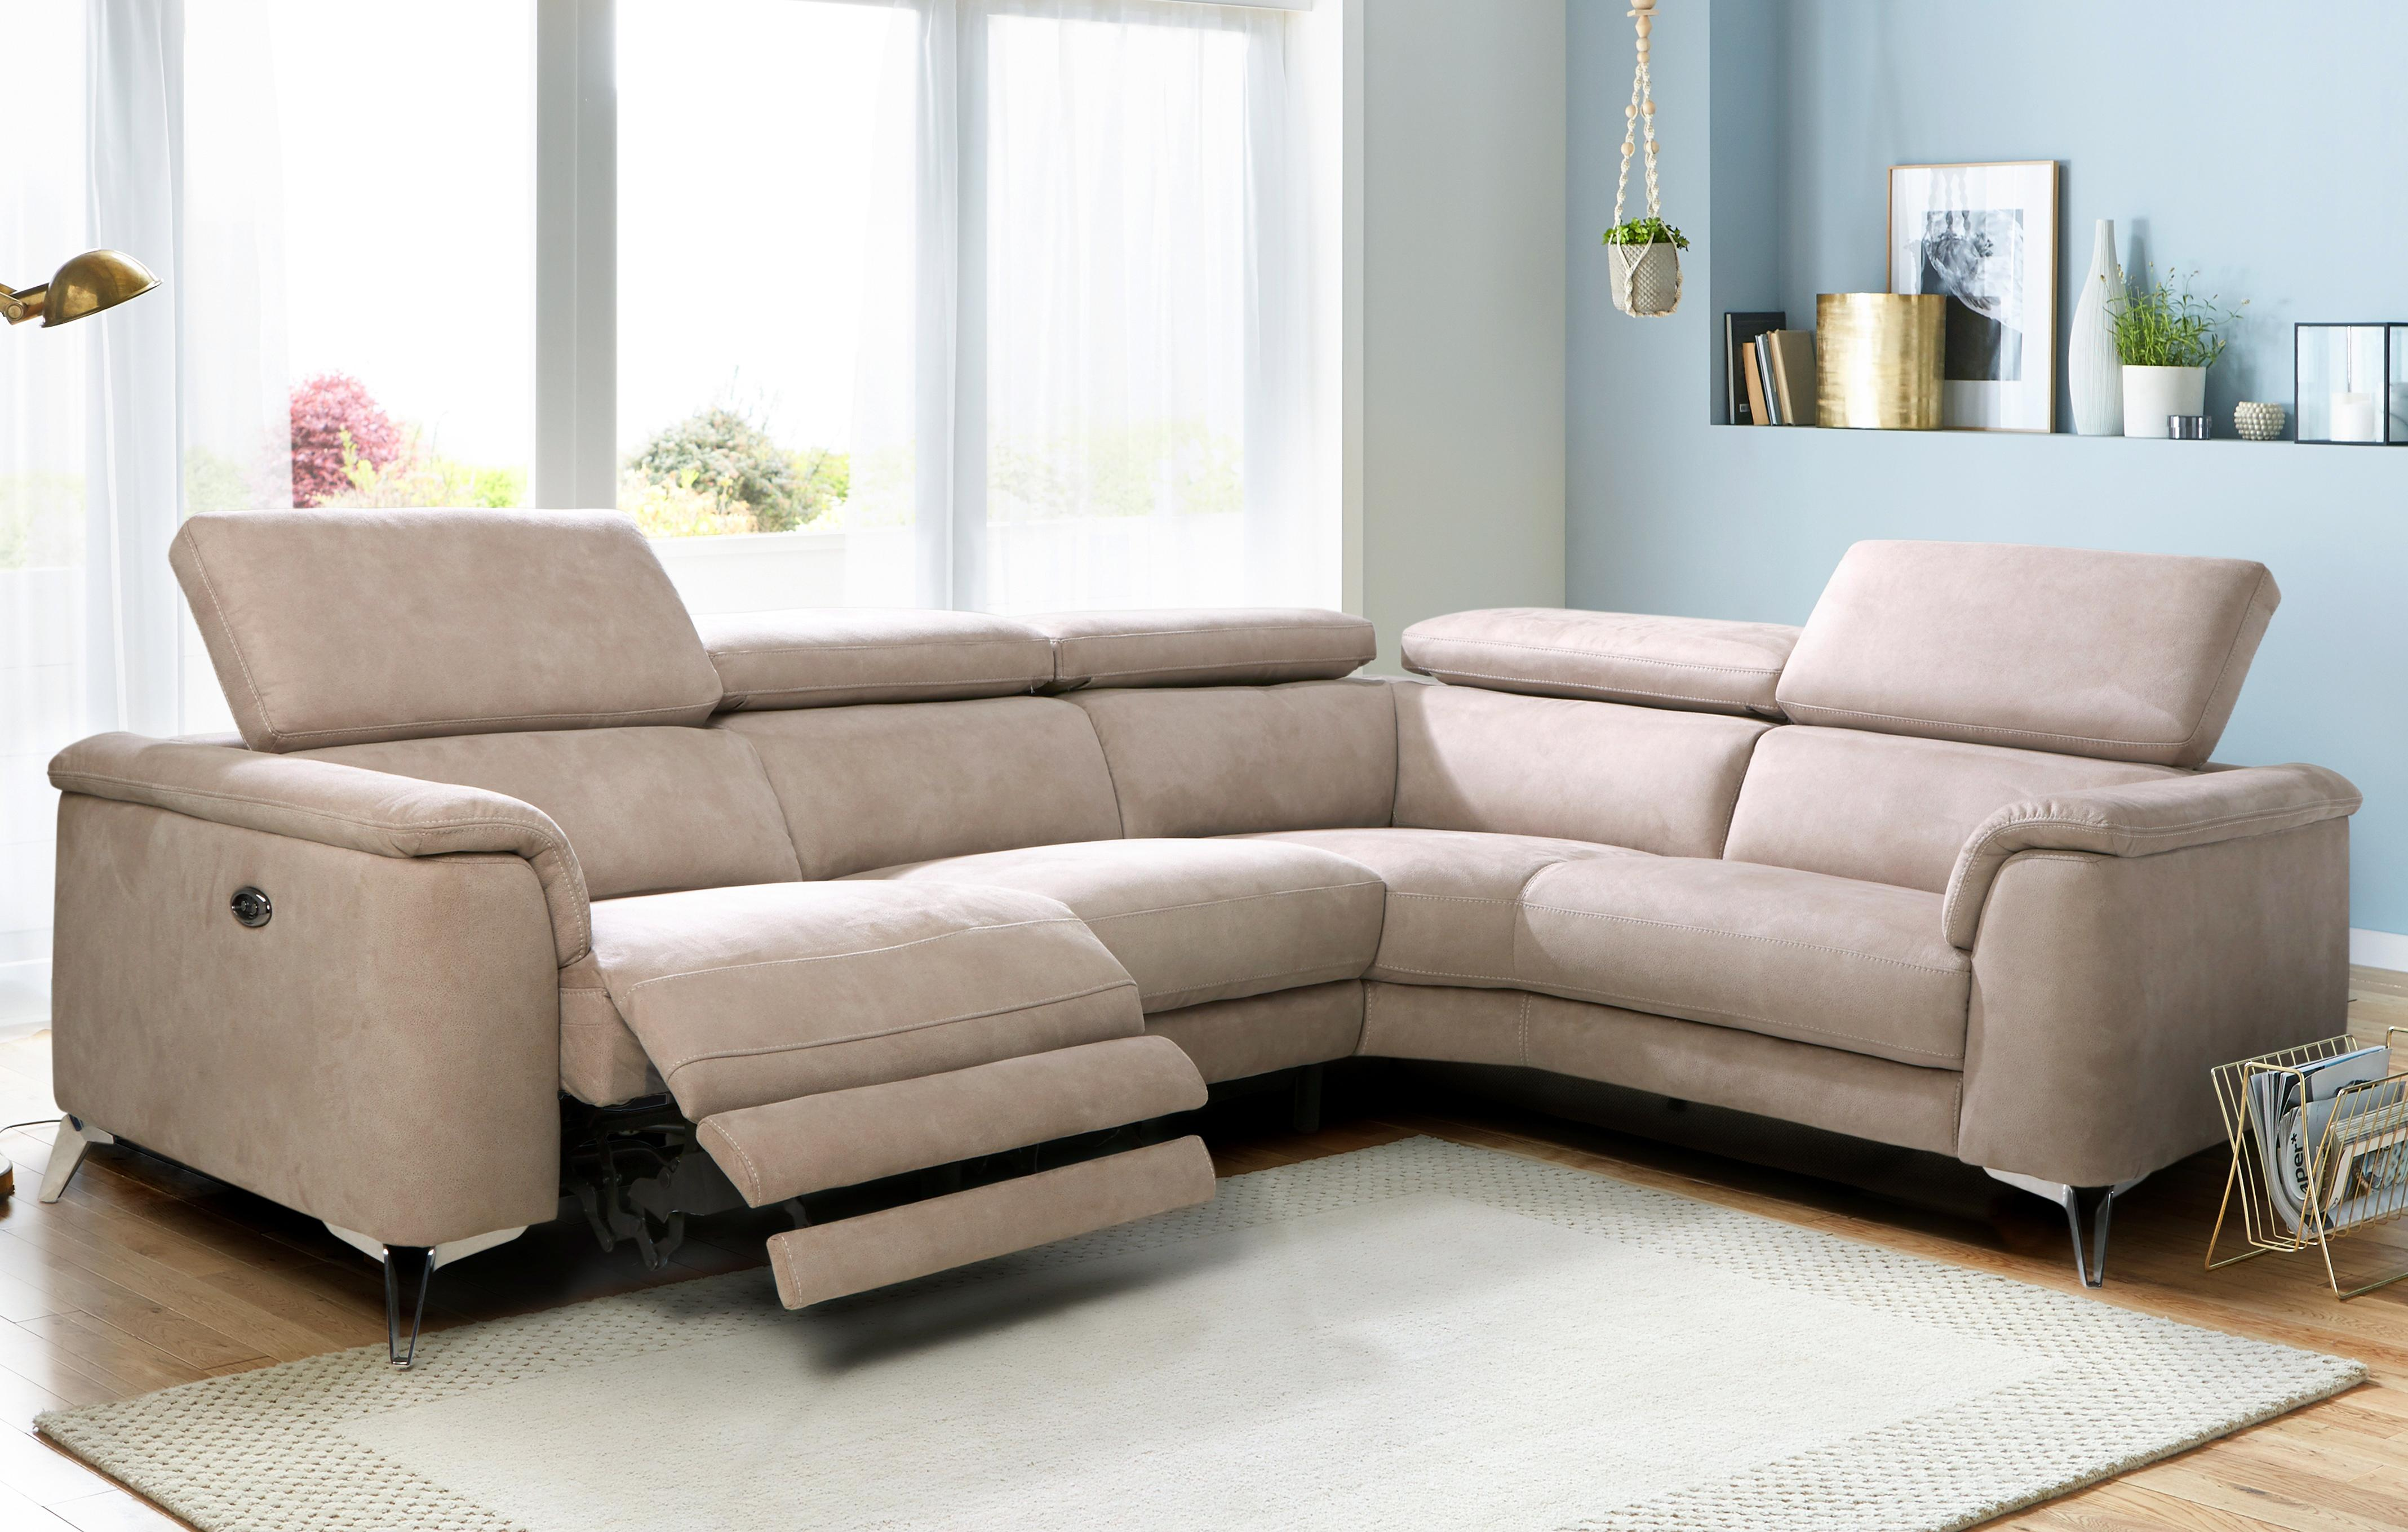 electric recliner leather sofas uk how much is a sofa bed our full range fabric dfs tahiti option c left hand facing 2 seat piece power corner group arizona